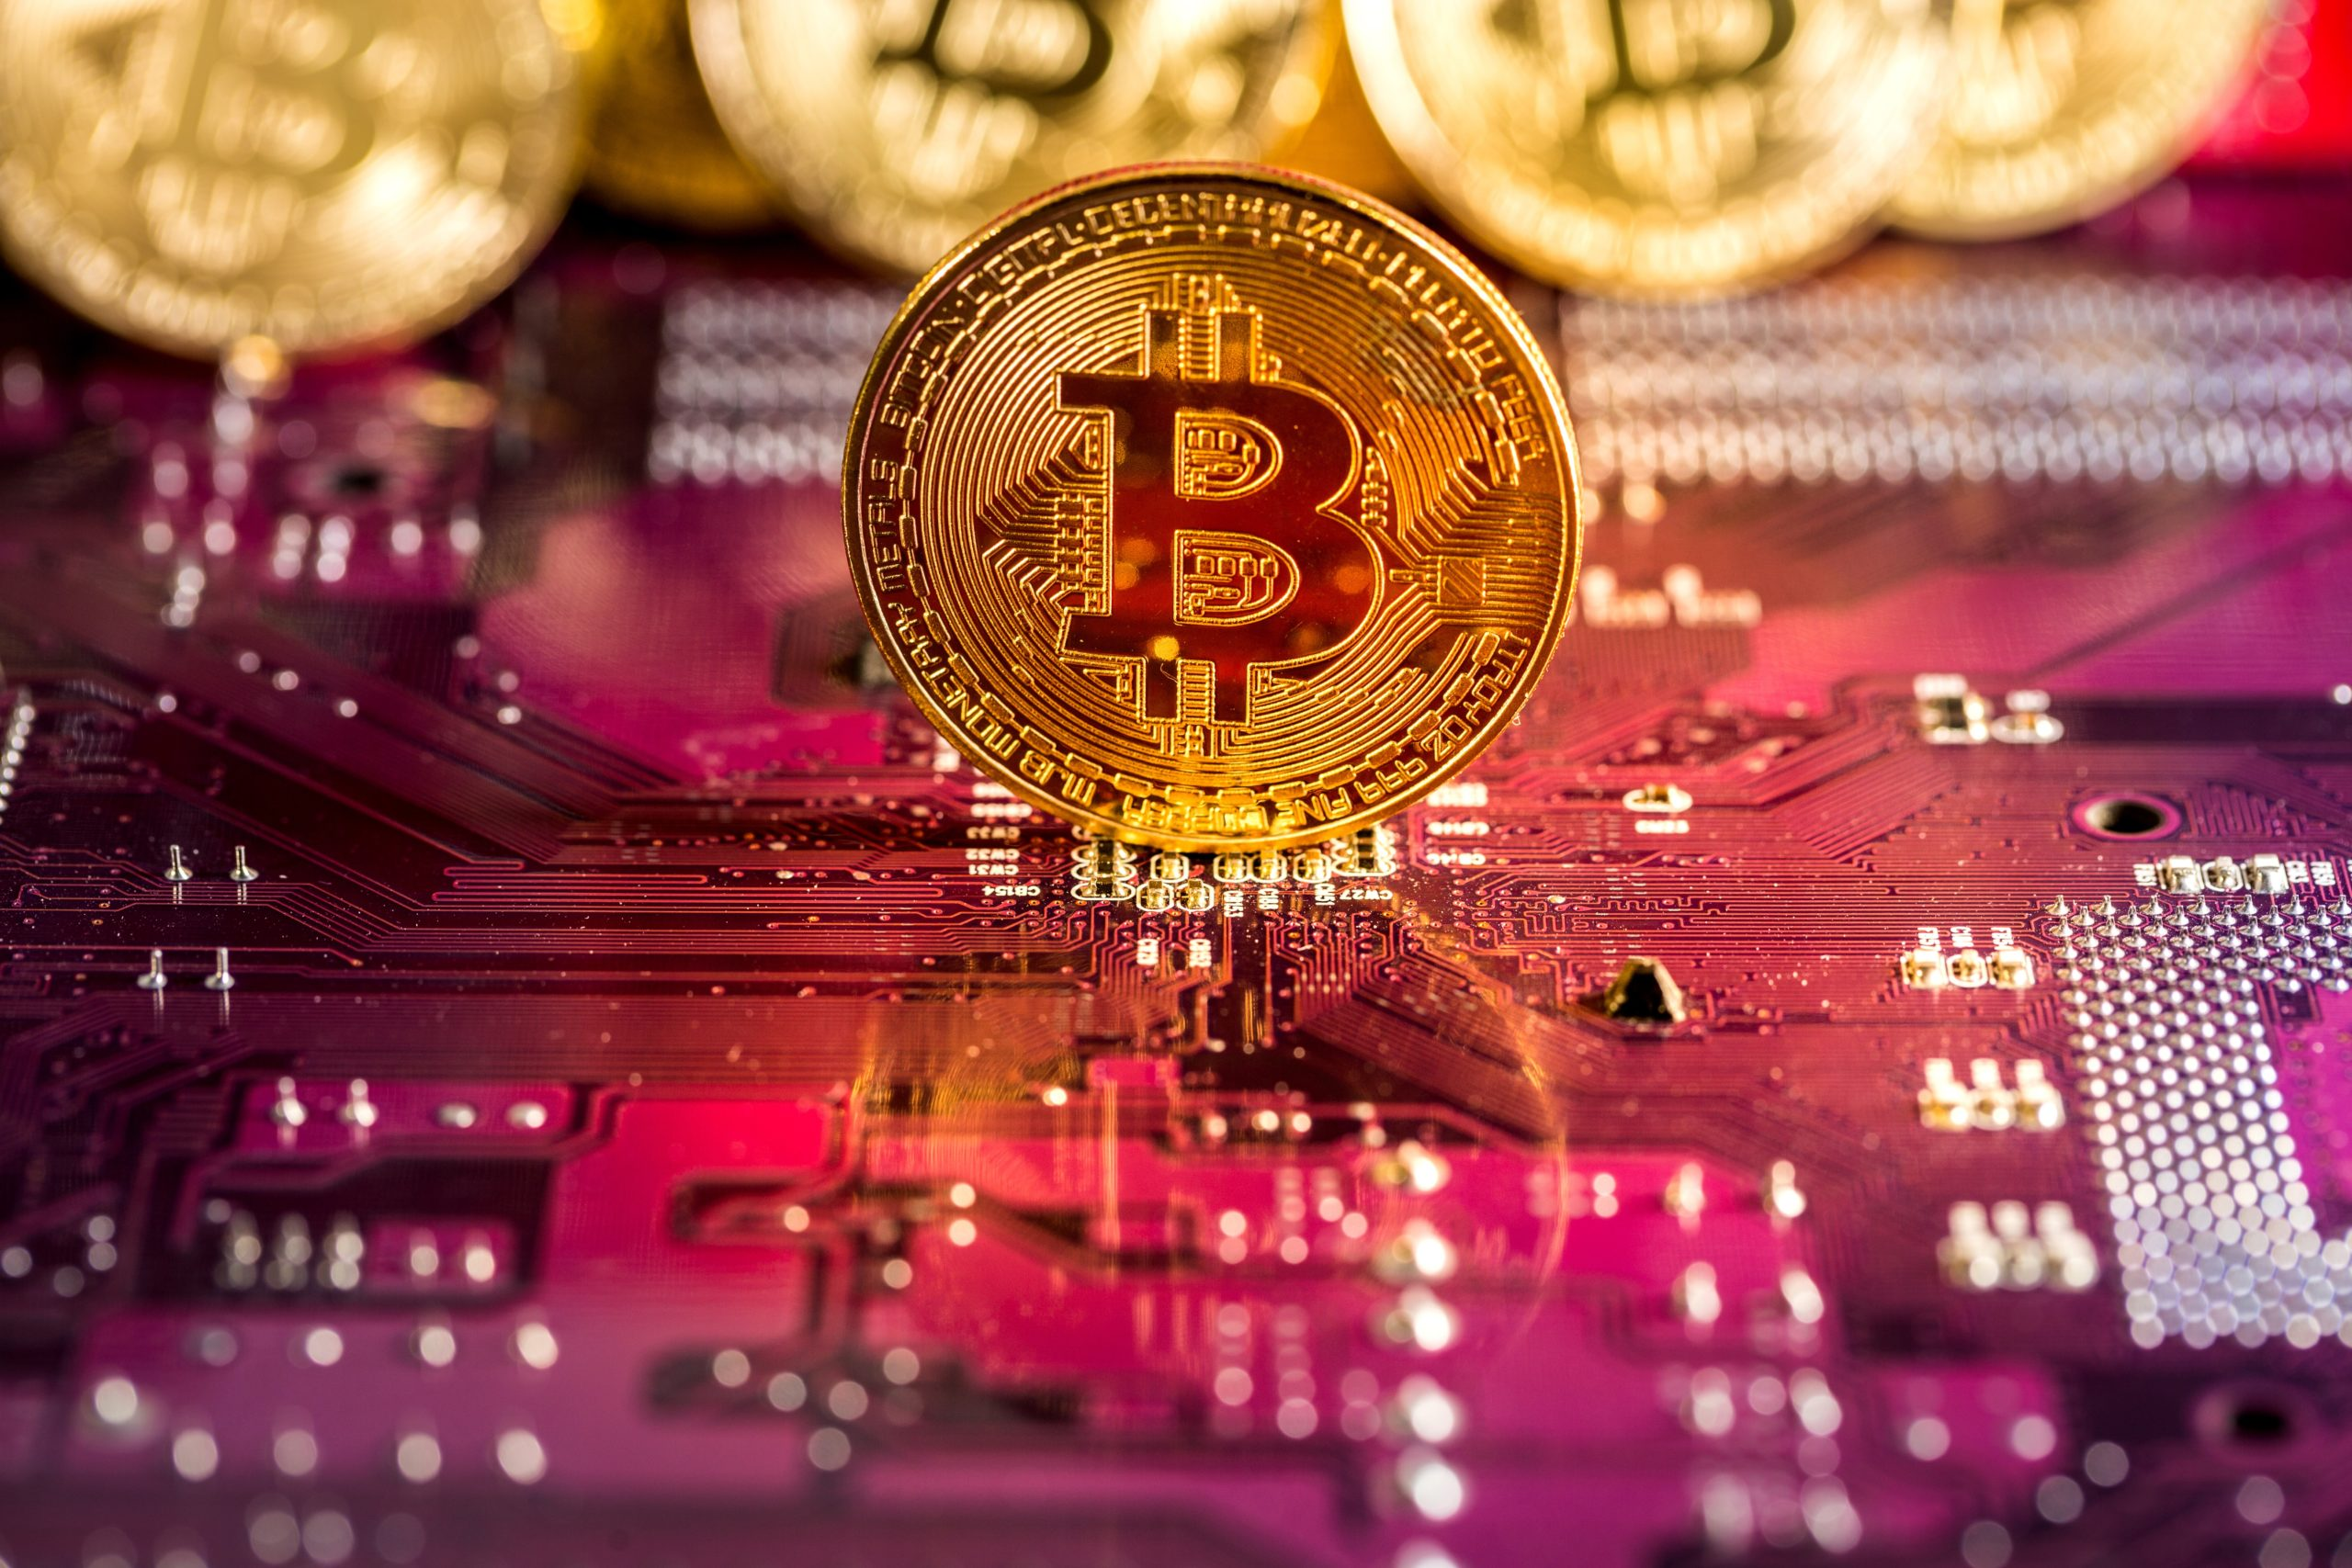 Bitcoin climbs towards all-time high after topping $19,000